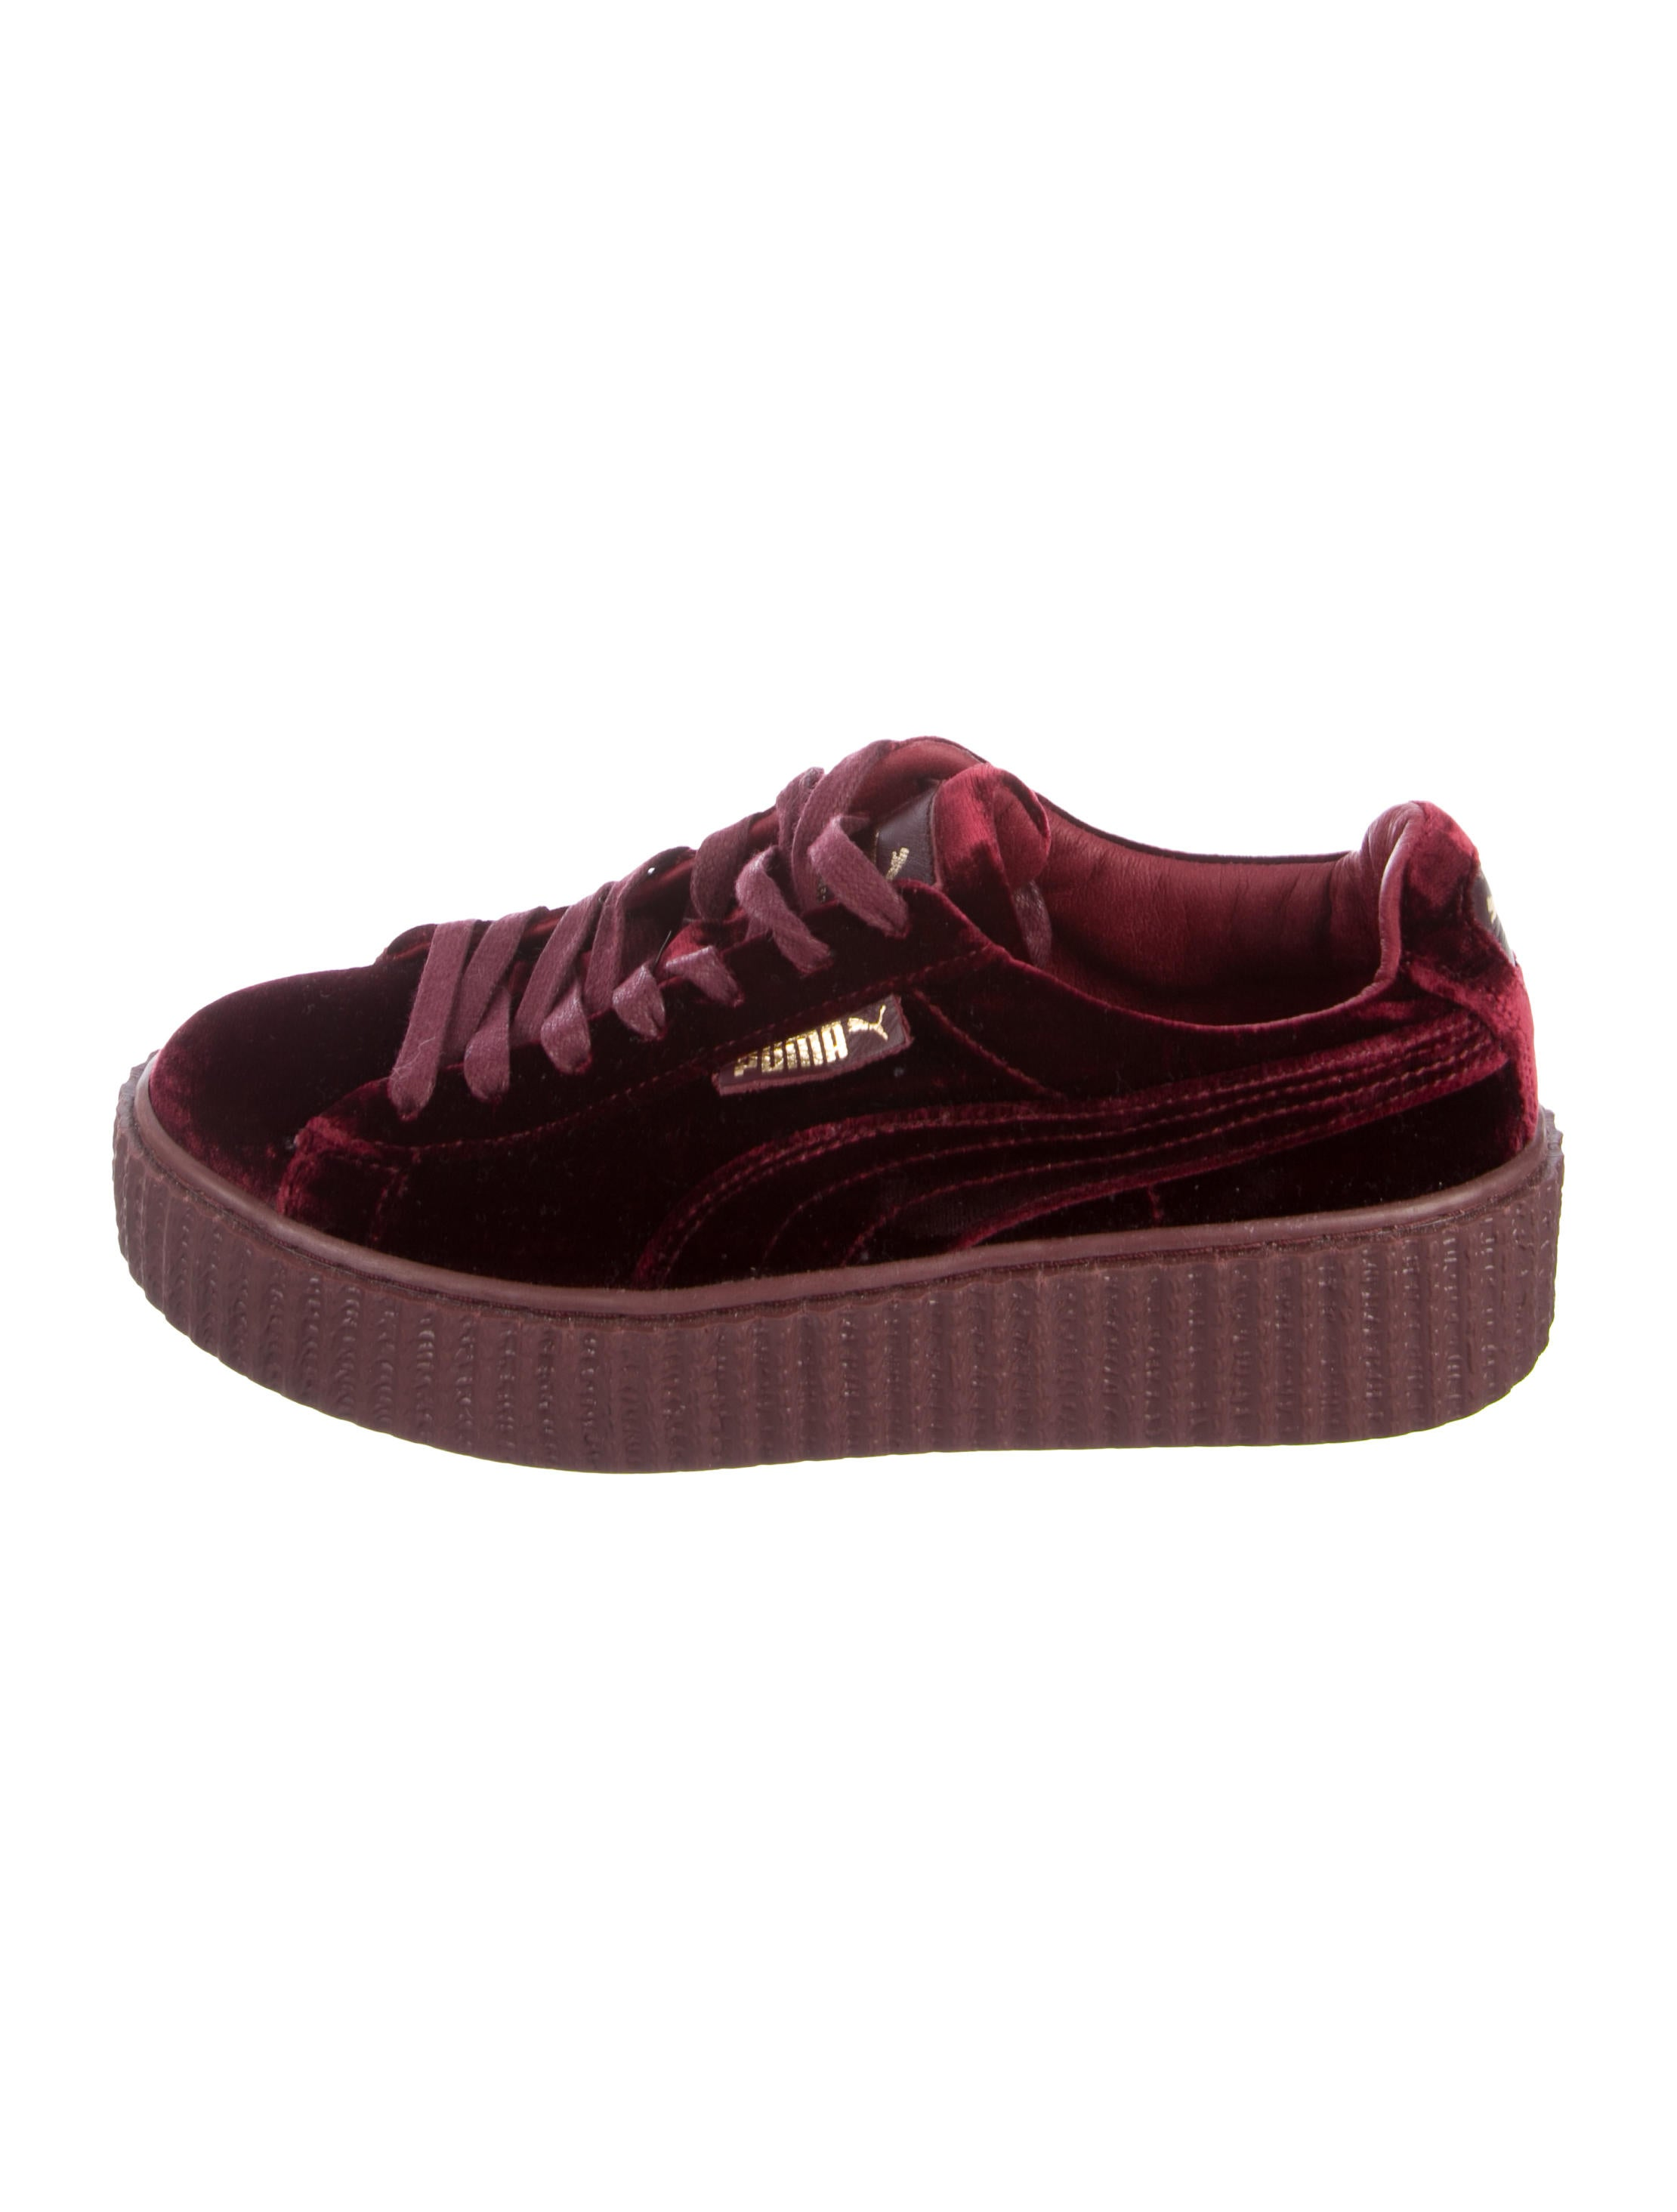 new product ff6c9 5d41d Fenty x Puma Velvet Creeper Sneakers - Shoes - WPMFY20697 ...